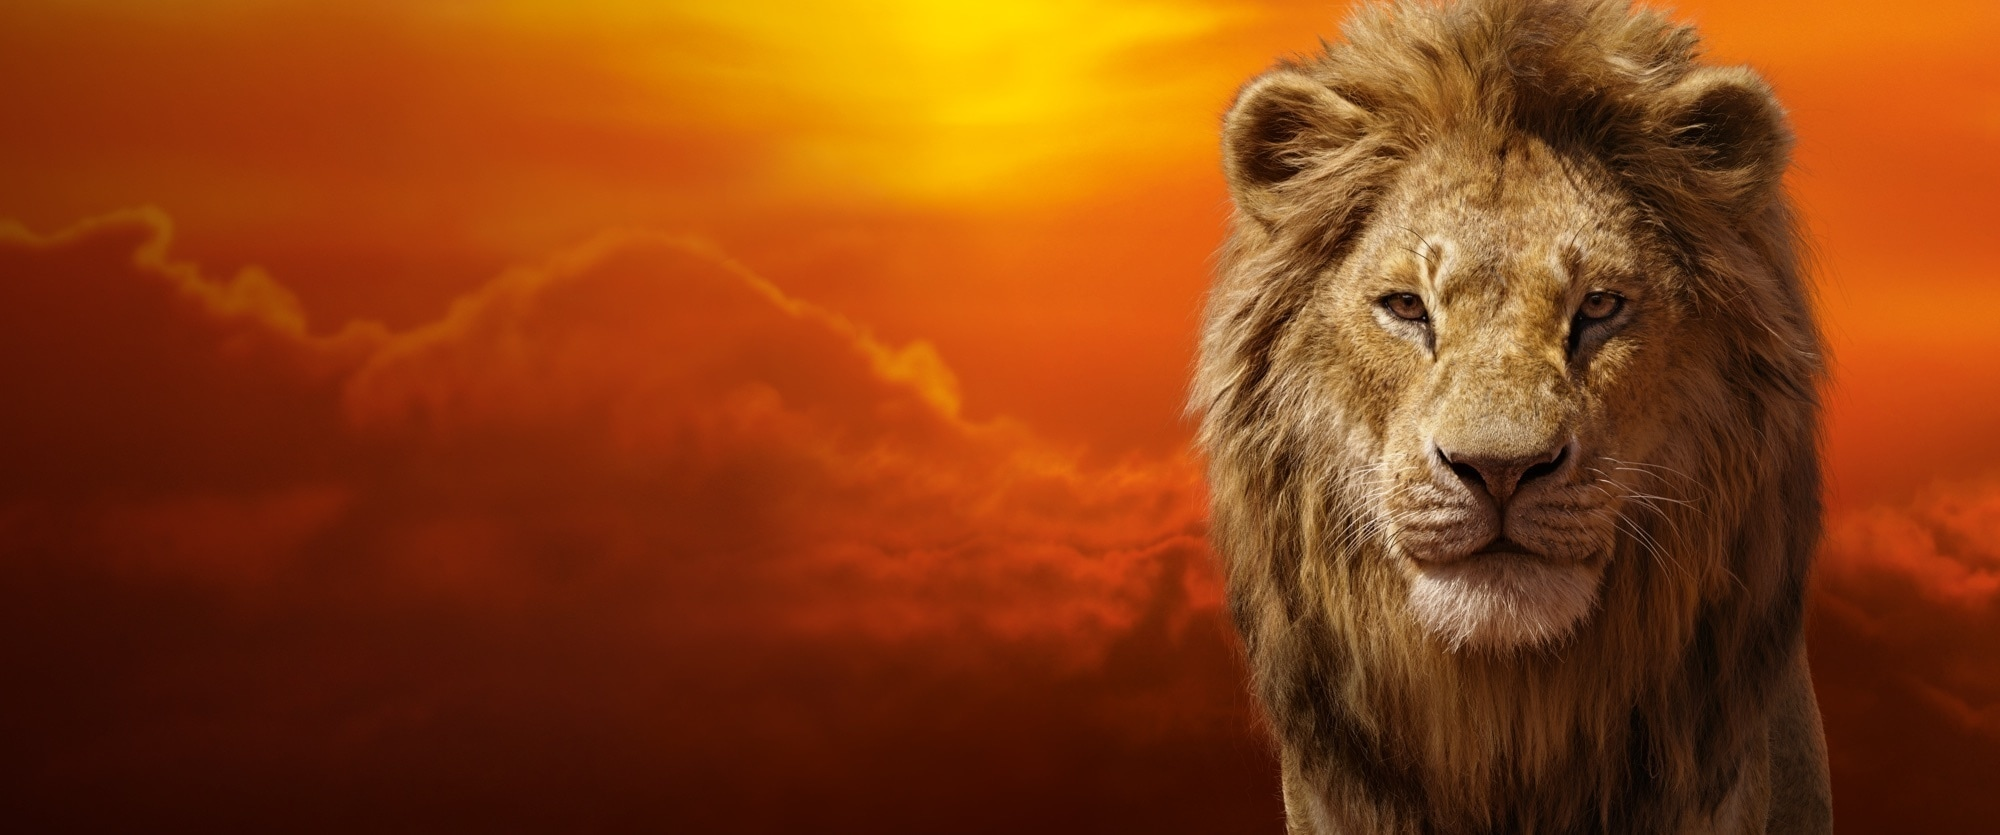 The Lion King| El 18 de julio en cines